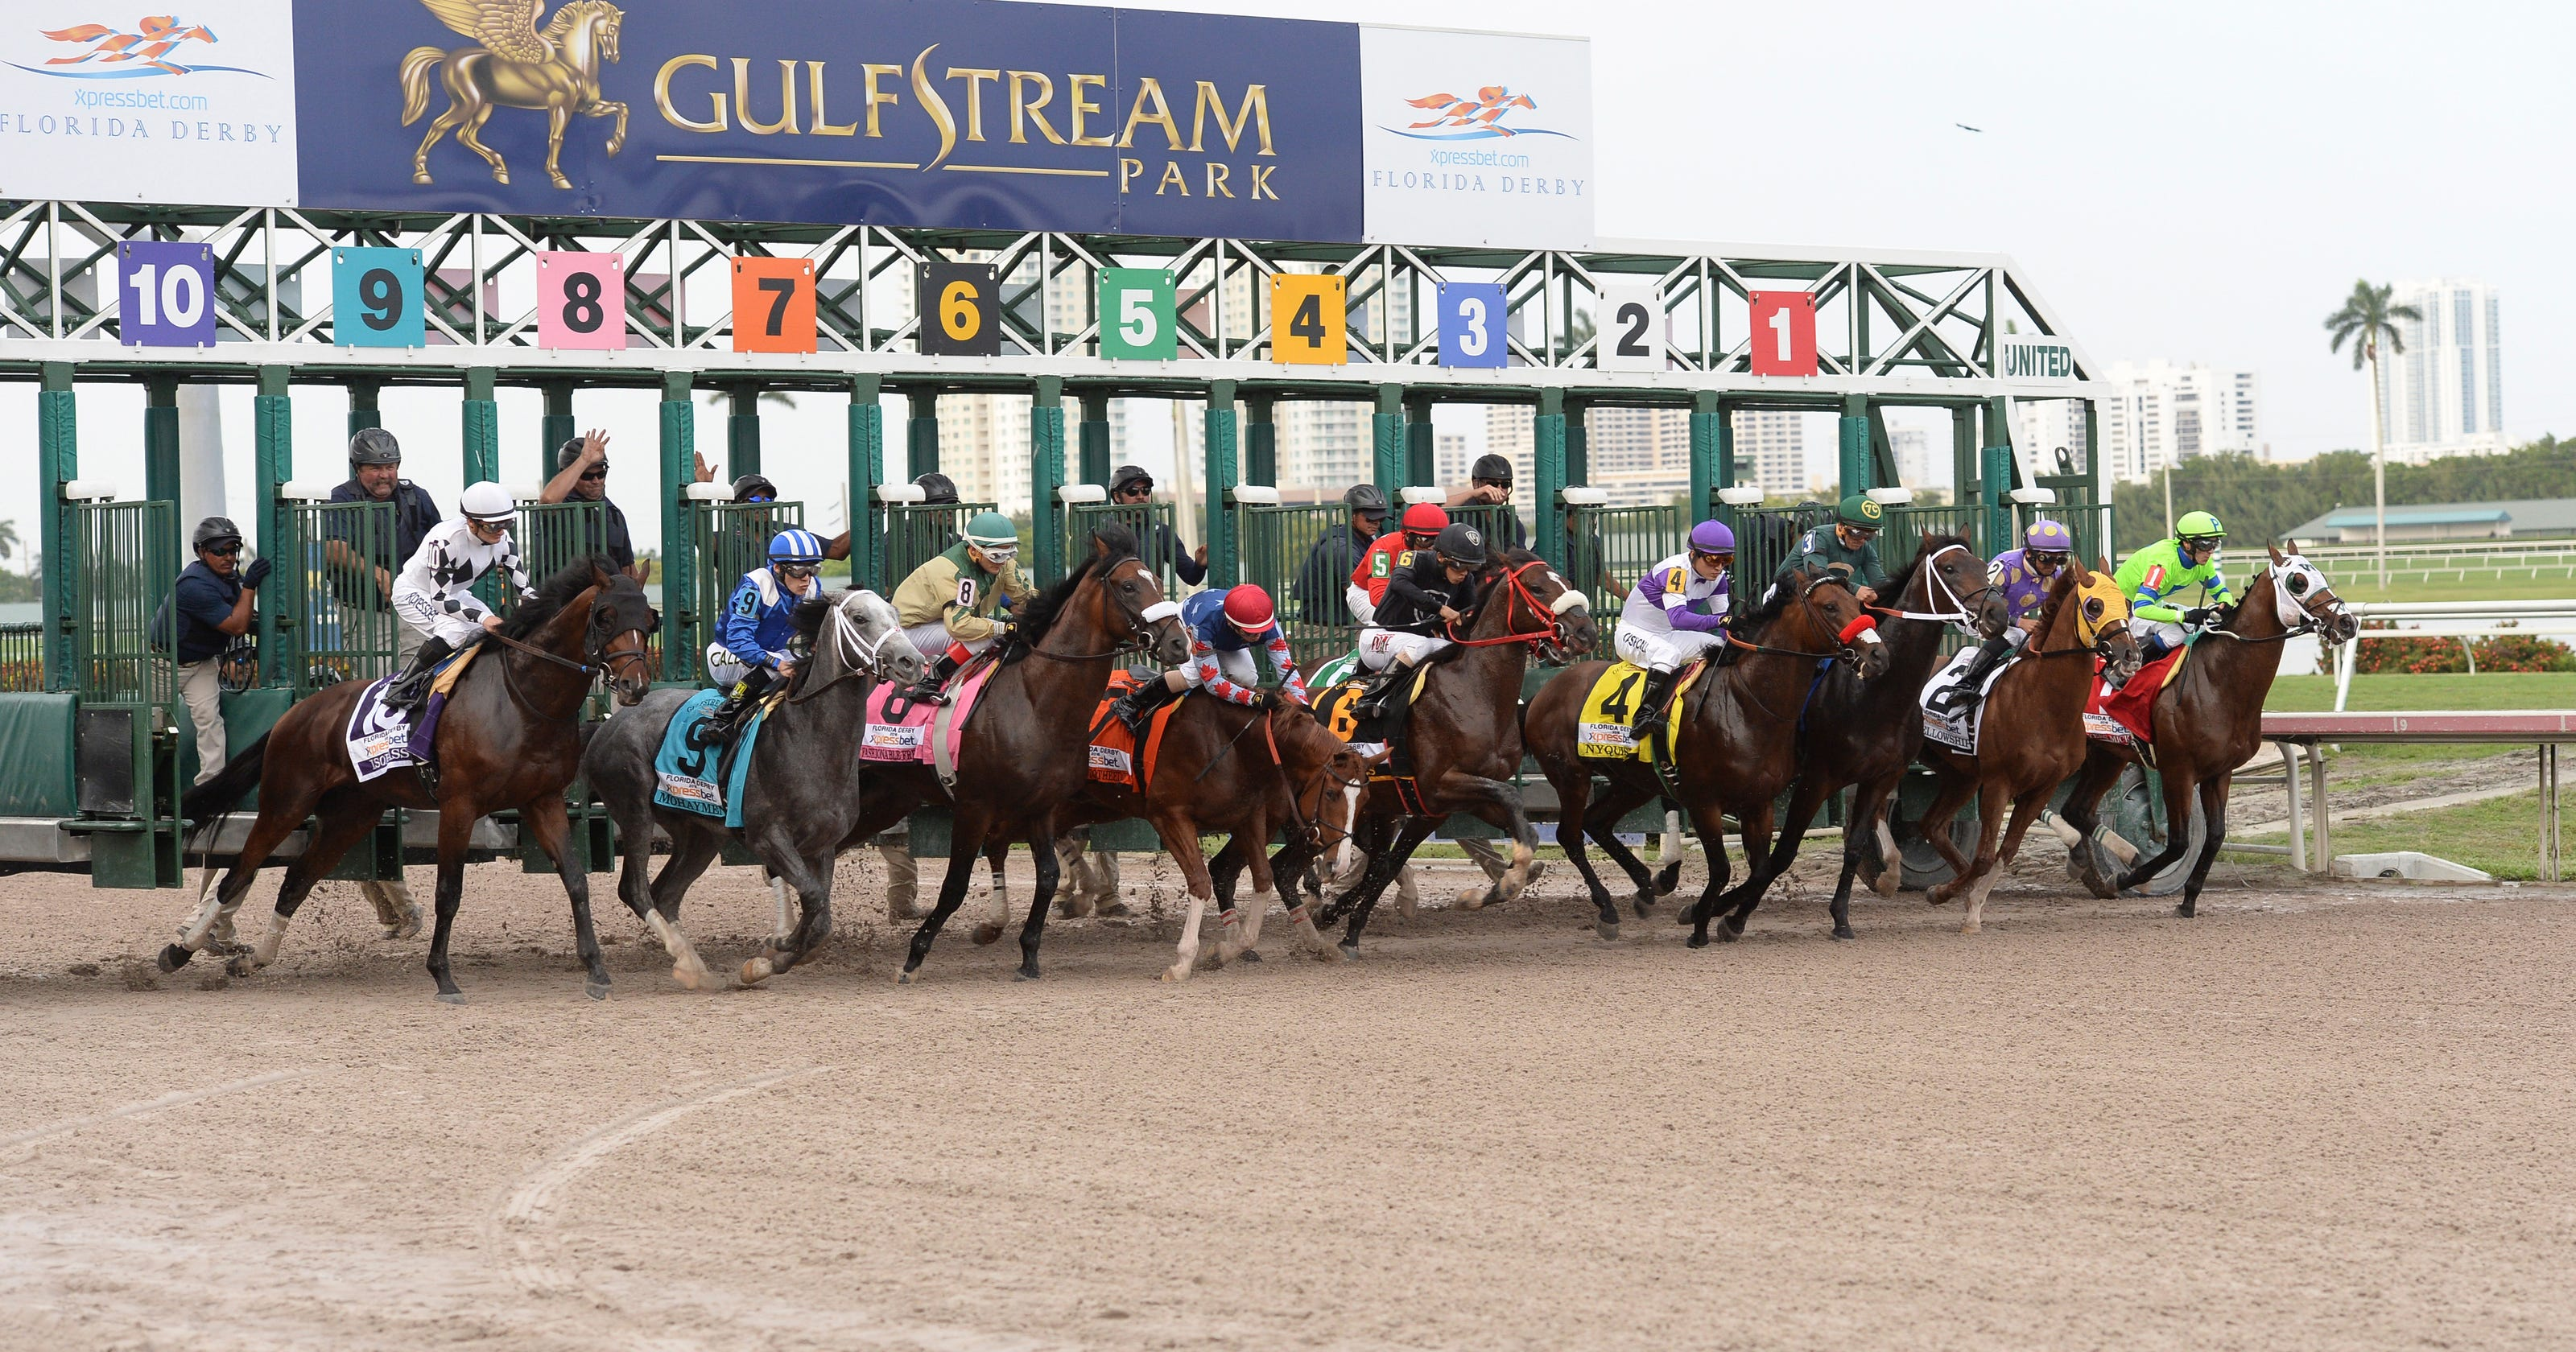 The Eighth Pole: When a horse wants to win but the jockey doesn't